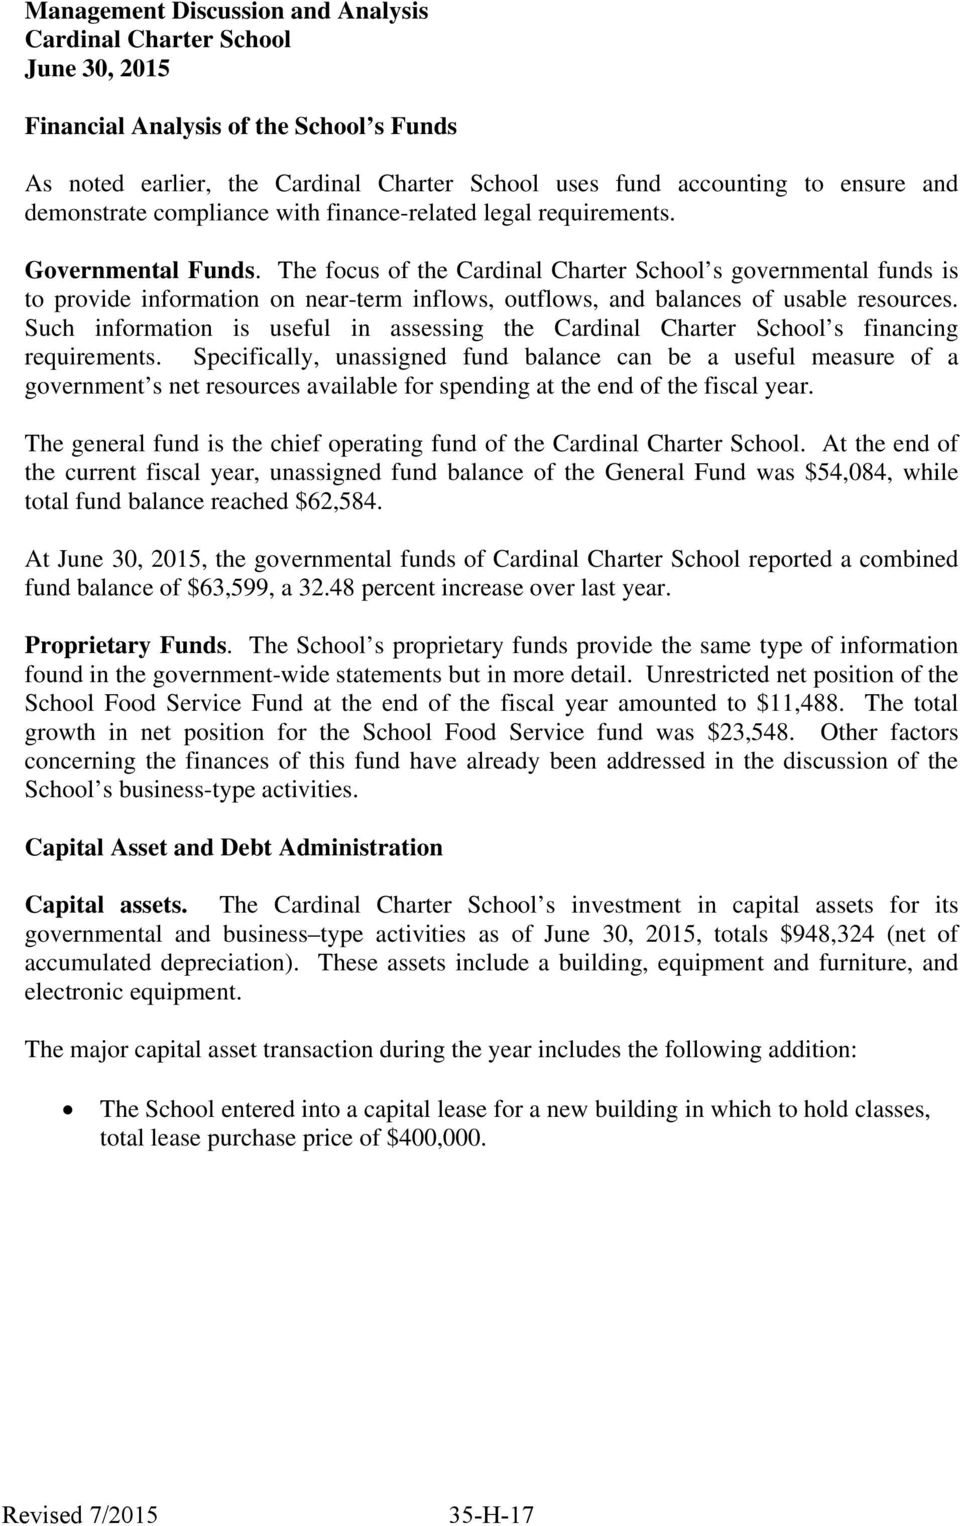 The focus of the Cardinal Charter School s governmental funds is to provide information on near-term inflows, outflows, and balances of usable resources.